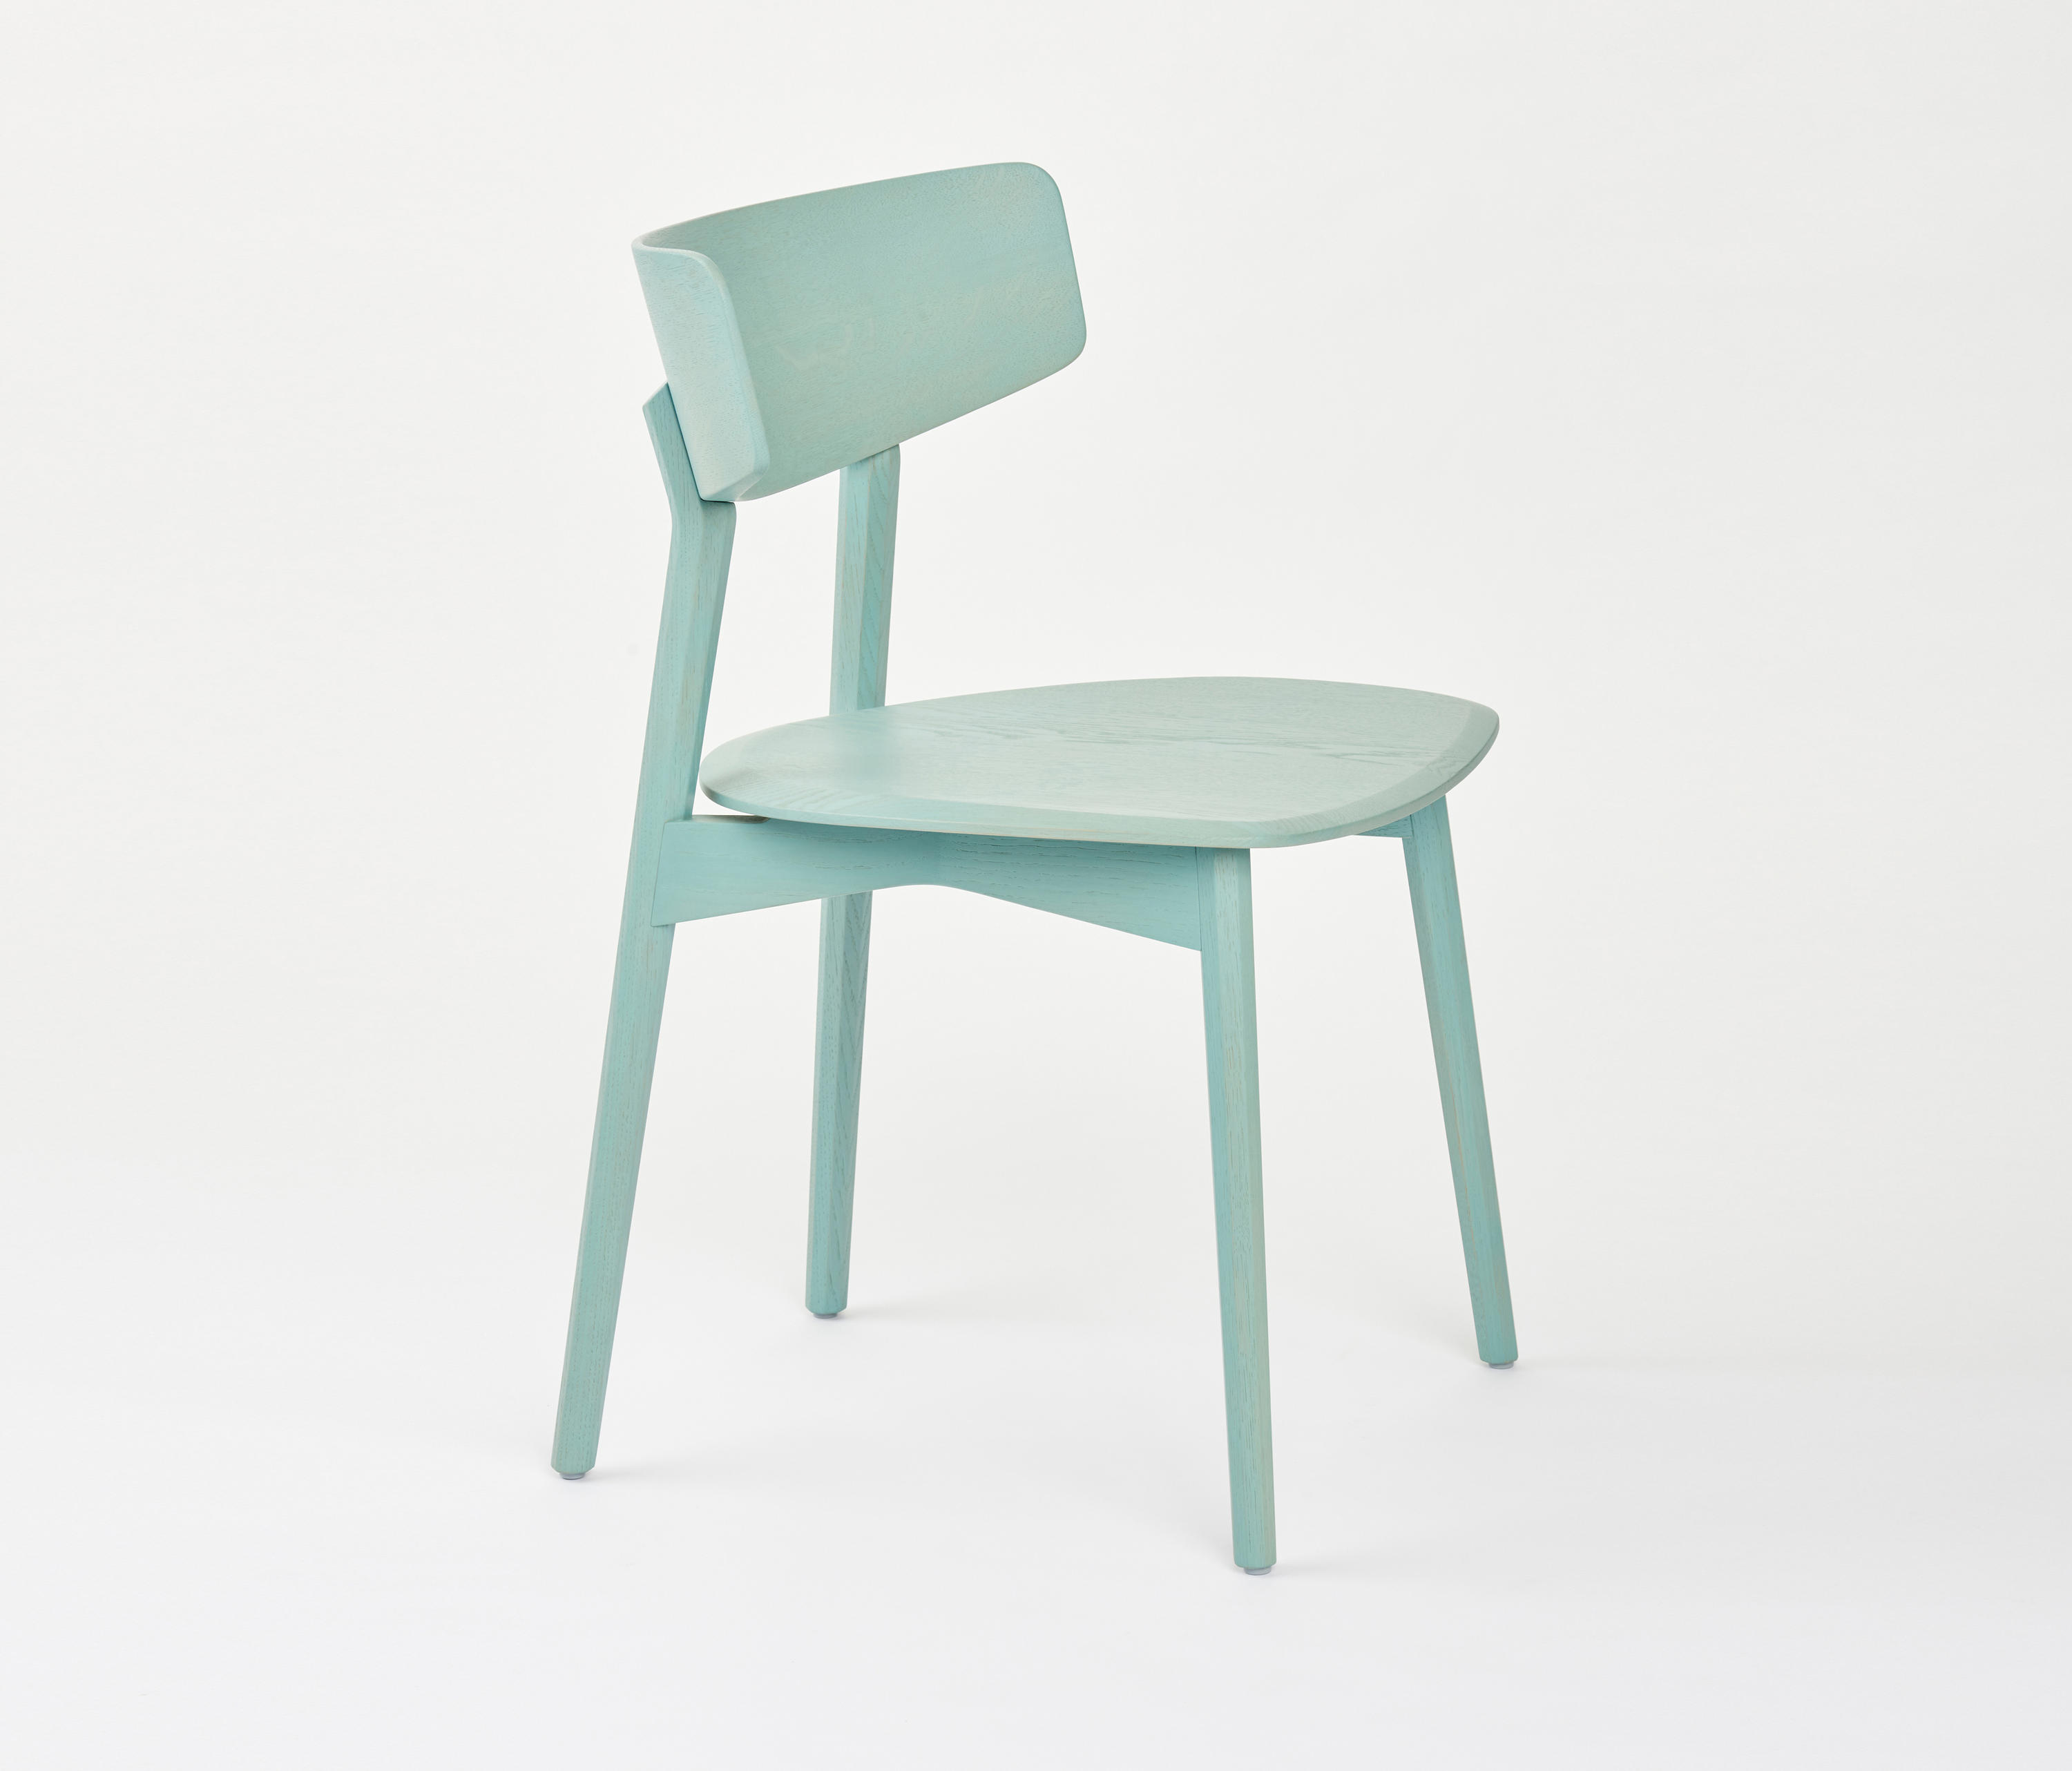 Aqua Dining Chairs Marlon Solid Wood Dining Chair Chairs From Axel Veit Architonic